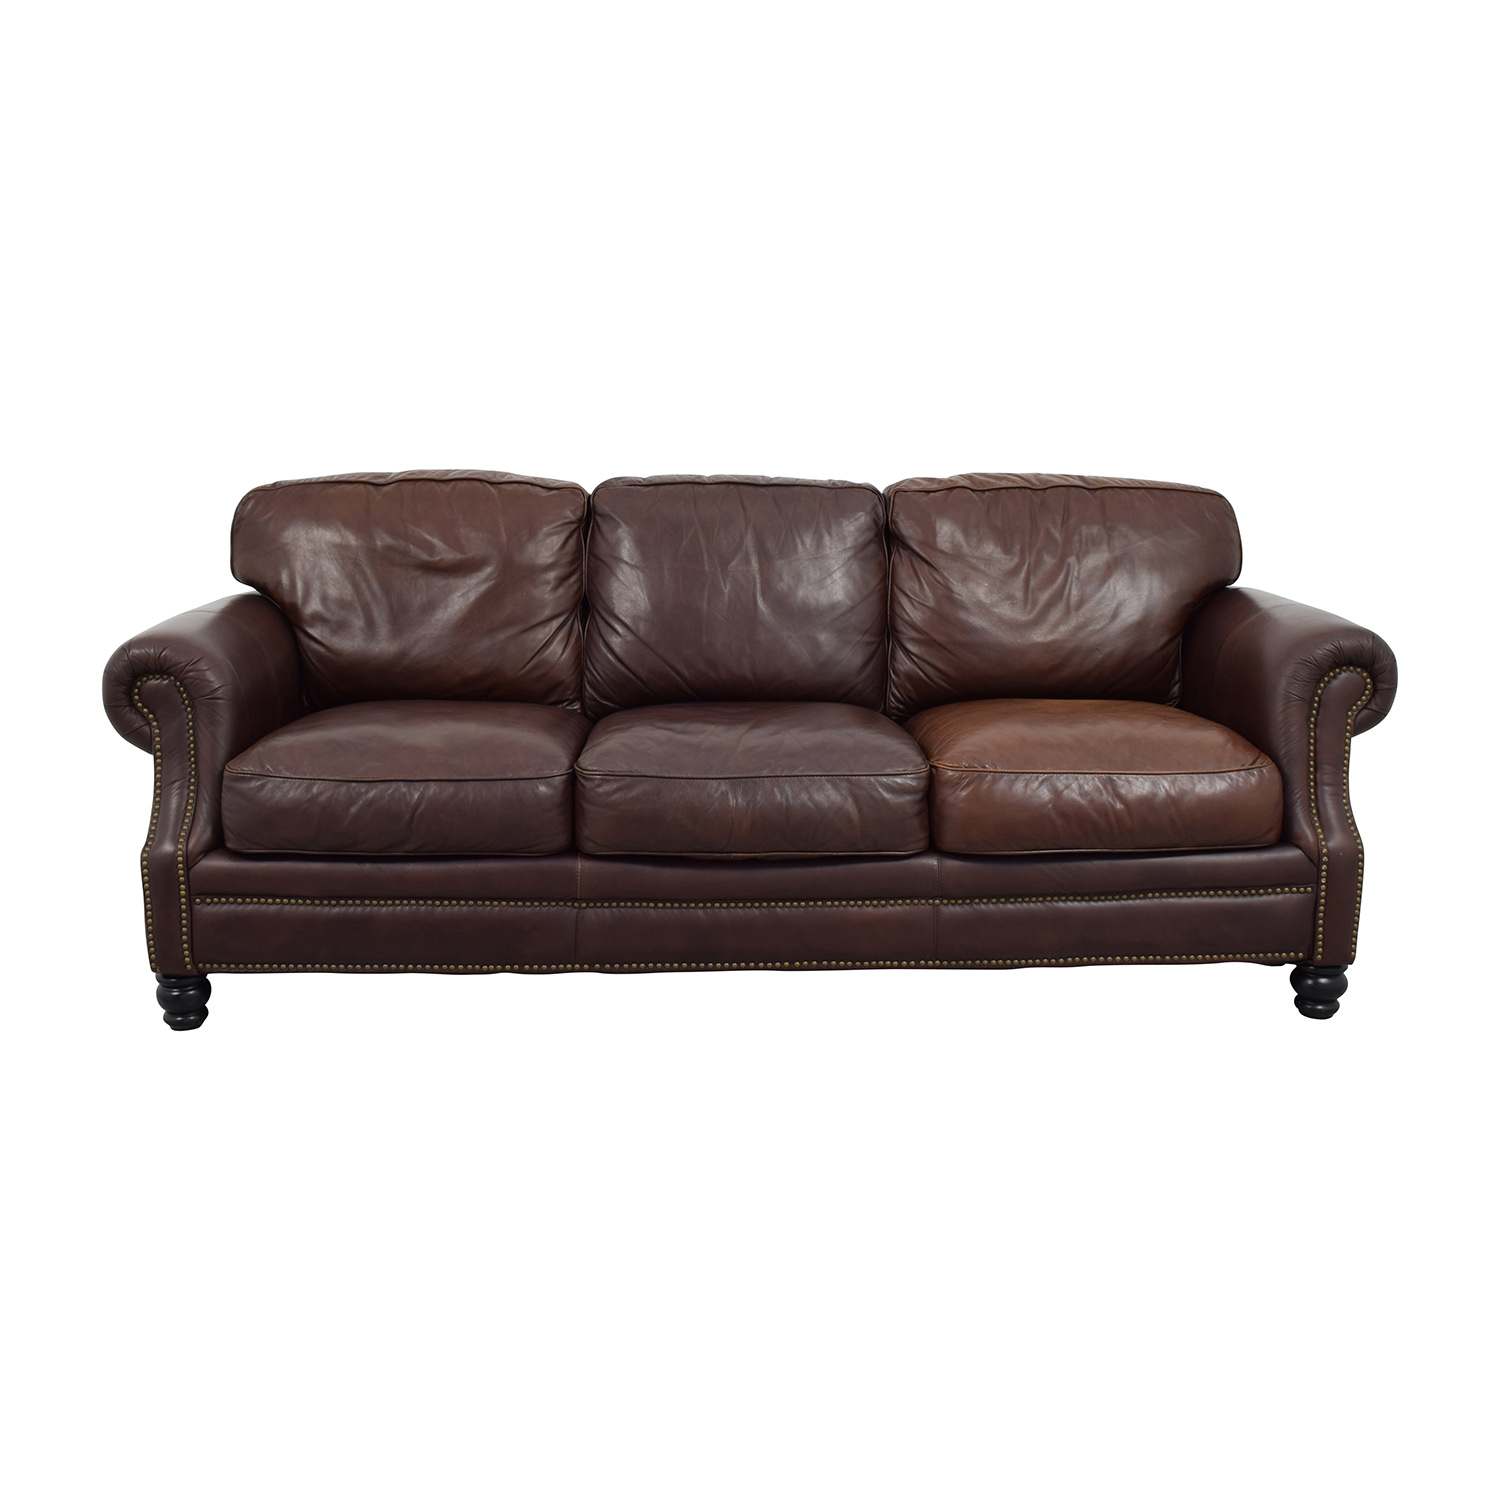 Ashton sofa 10 spring street ashton faux leather sofa bed for Leather studded couch